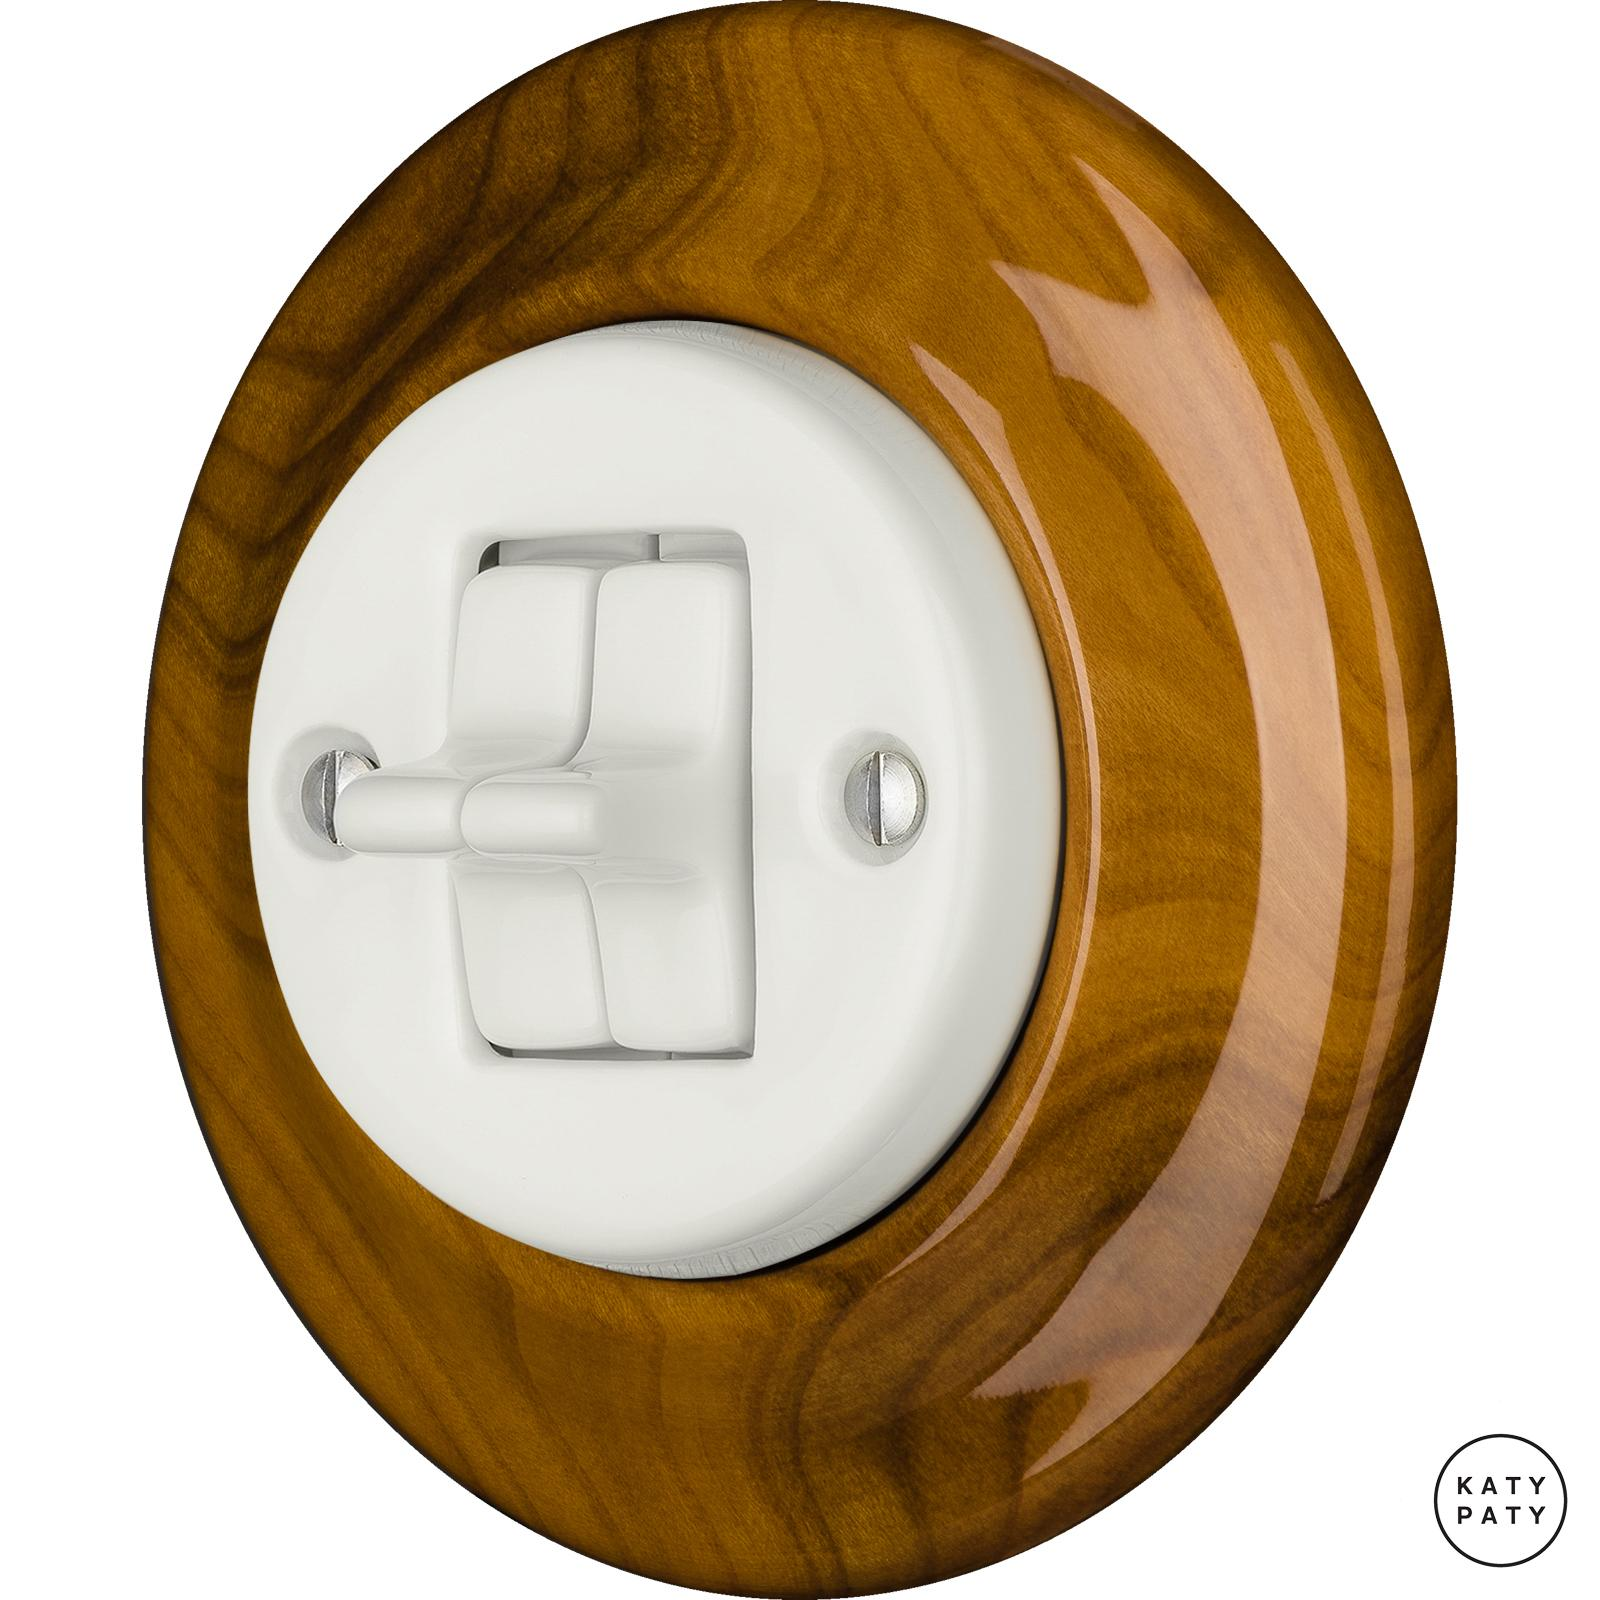 Porcelain toggle switches - a 2 gang ()  - PADELUS | Katy Paty